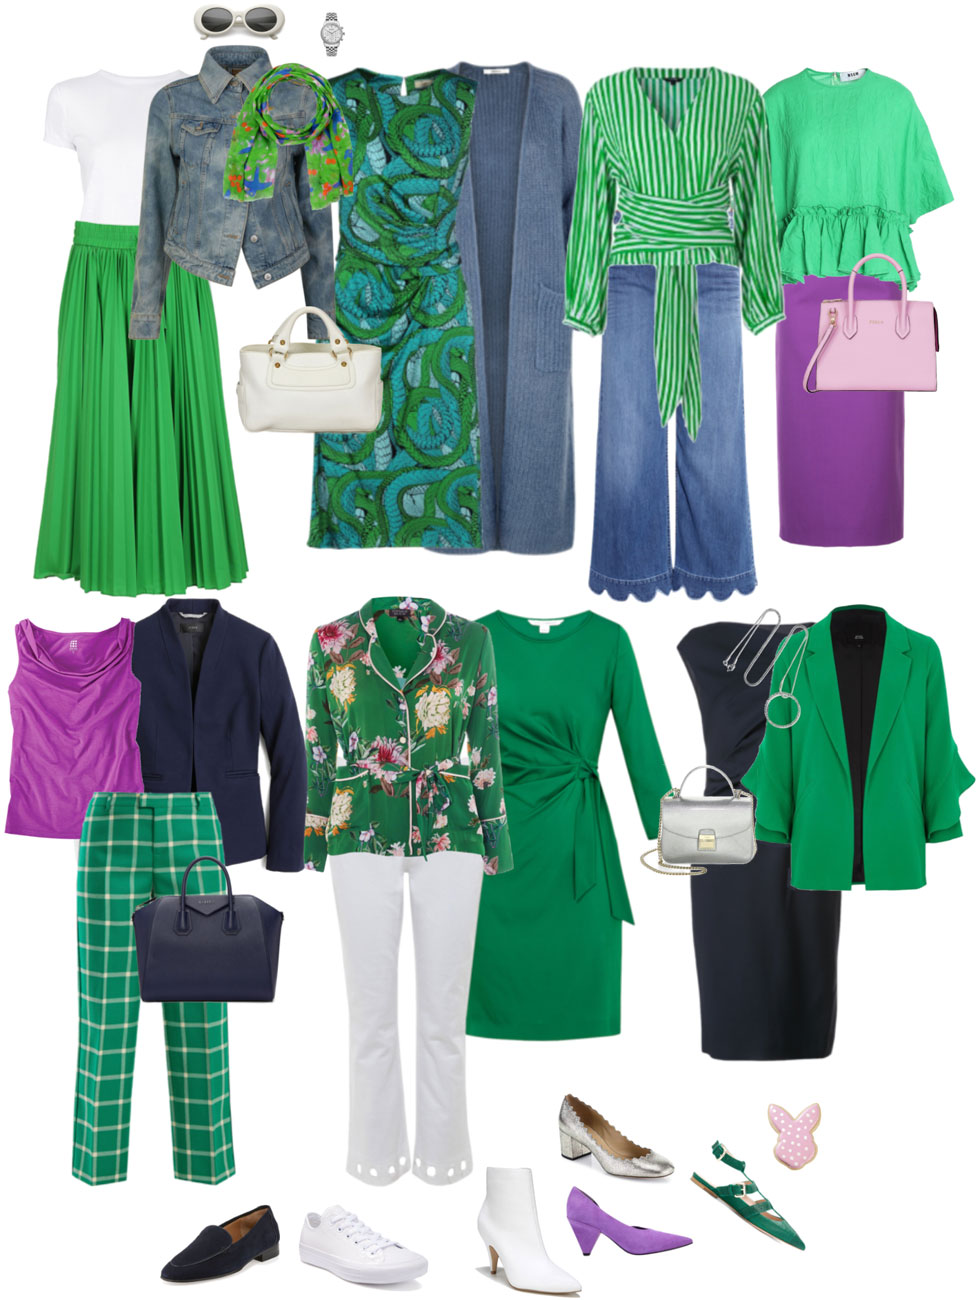 Ensemble Style Advice - Cool Spring Emerald